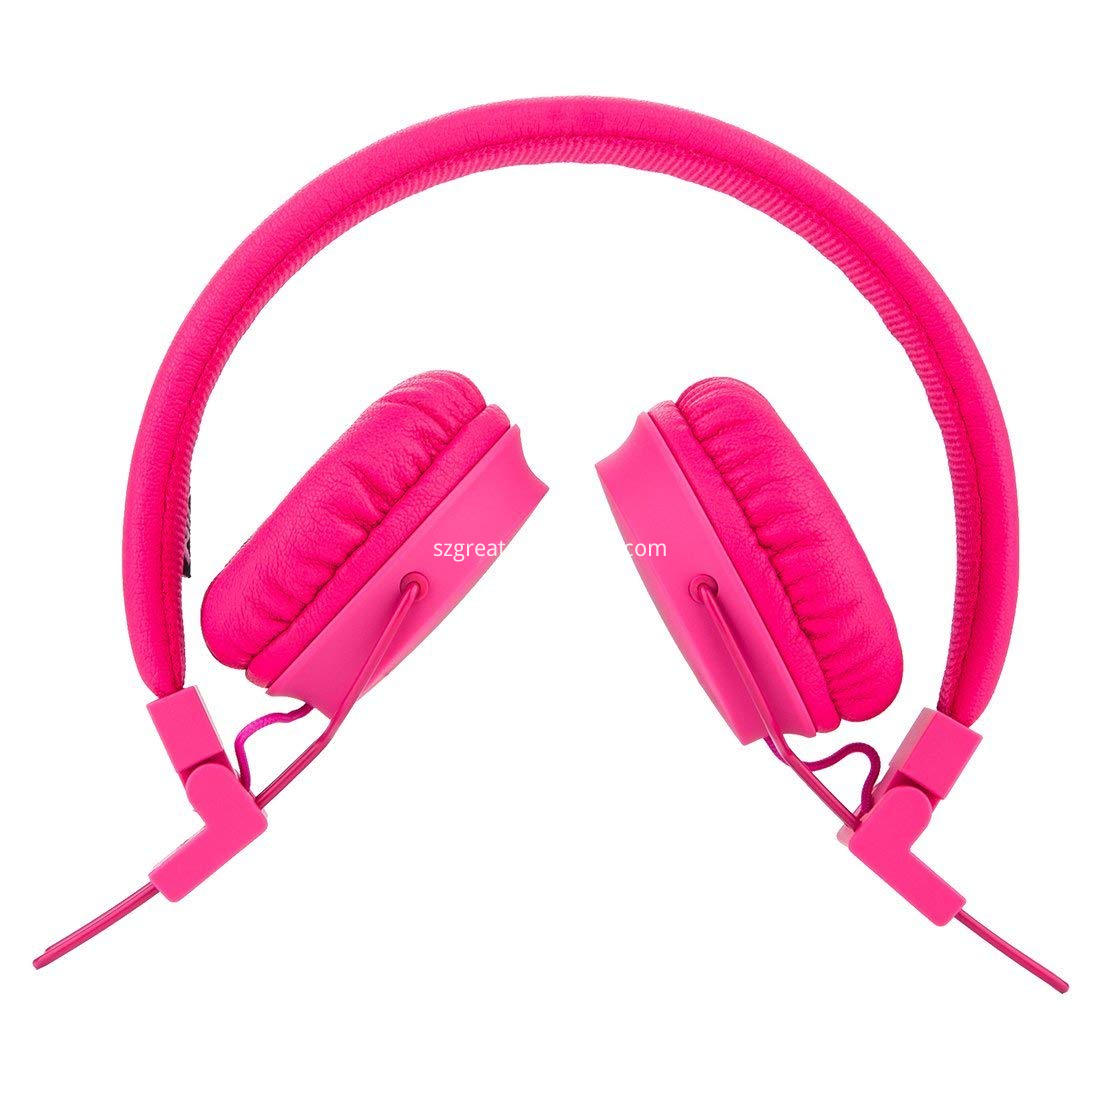 wired phone headset with microphone